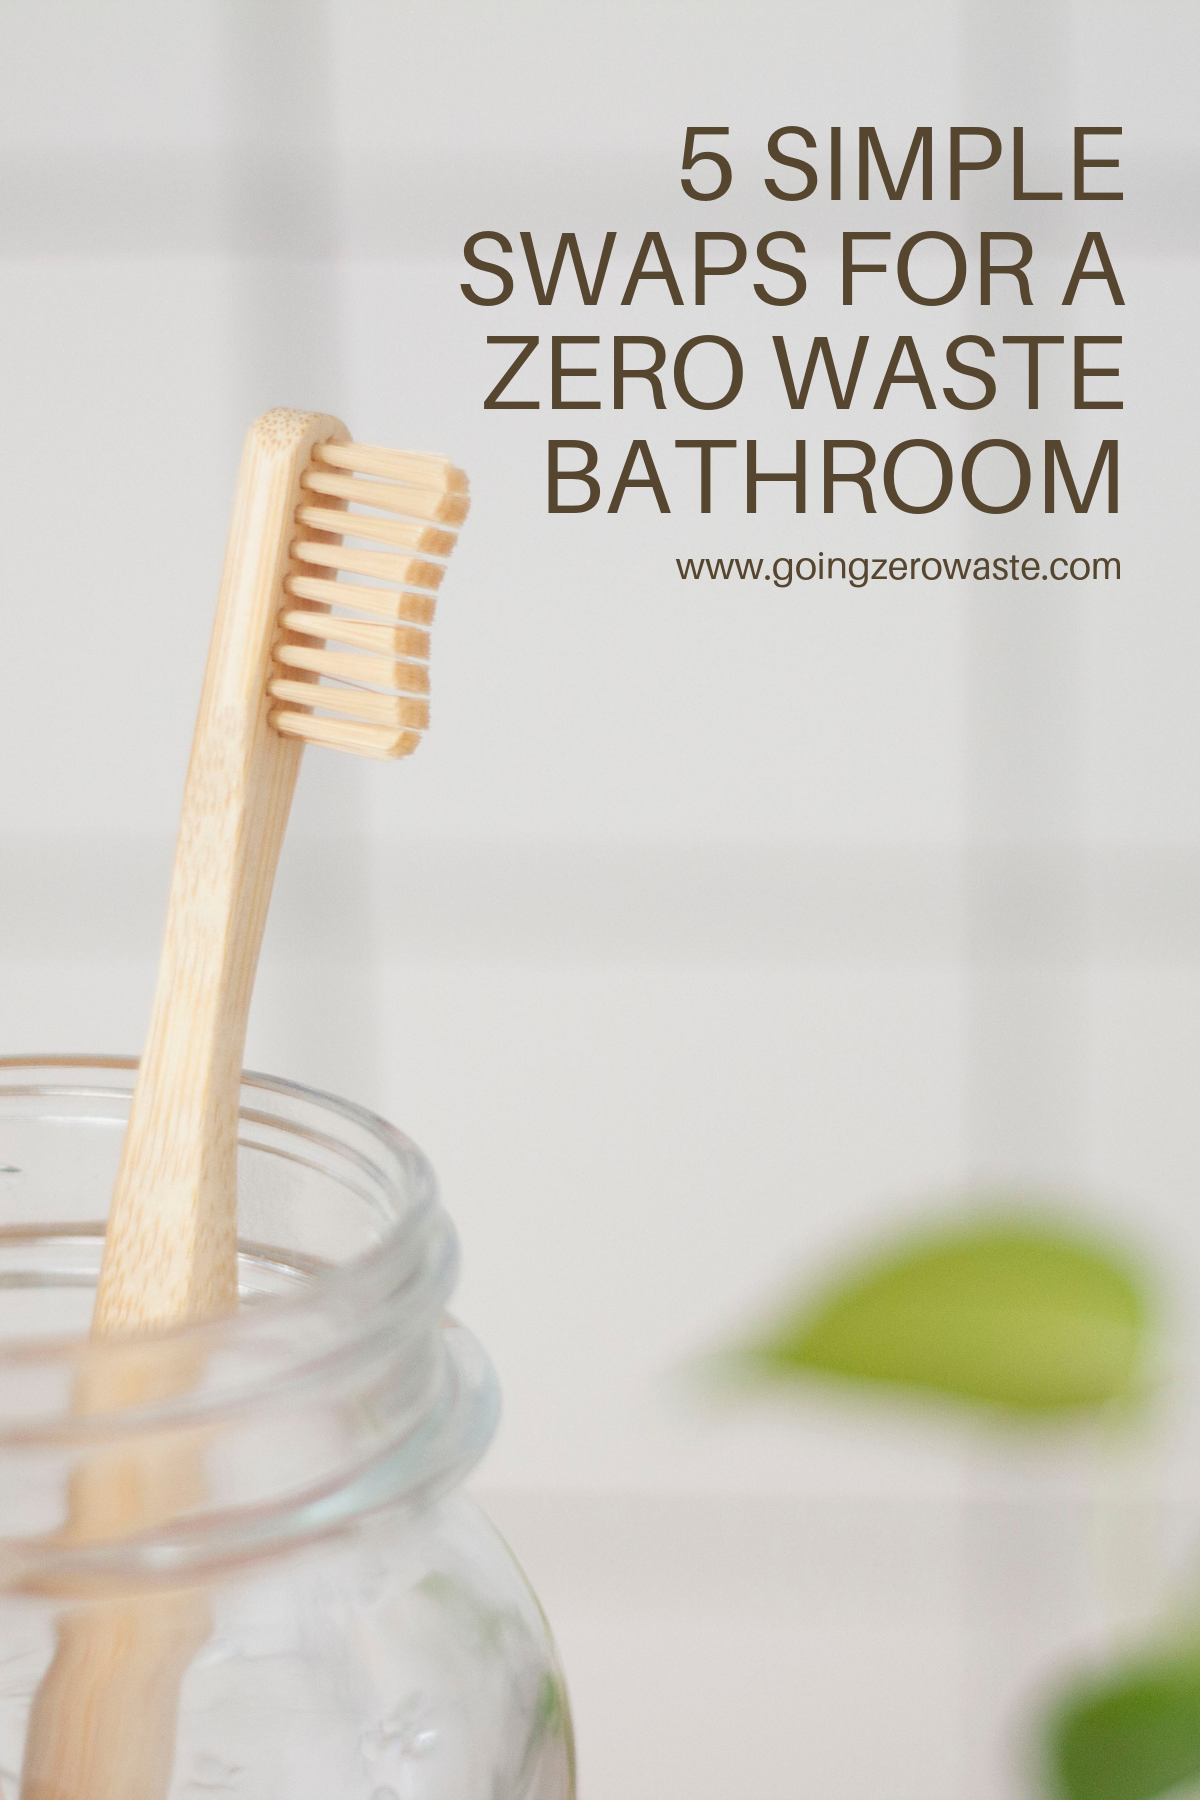 5 simple swaps for a zero waste bathroom from www.goingzerowaste.com #bathroom #zerowaste #swaps #ecofriendly